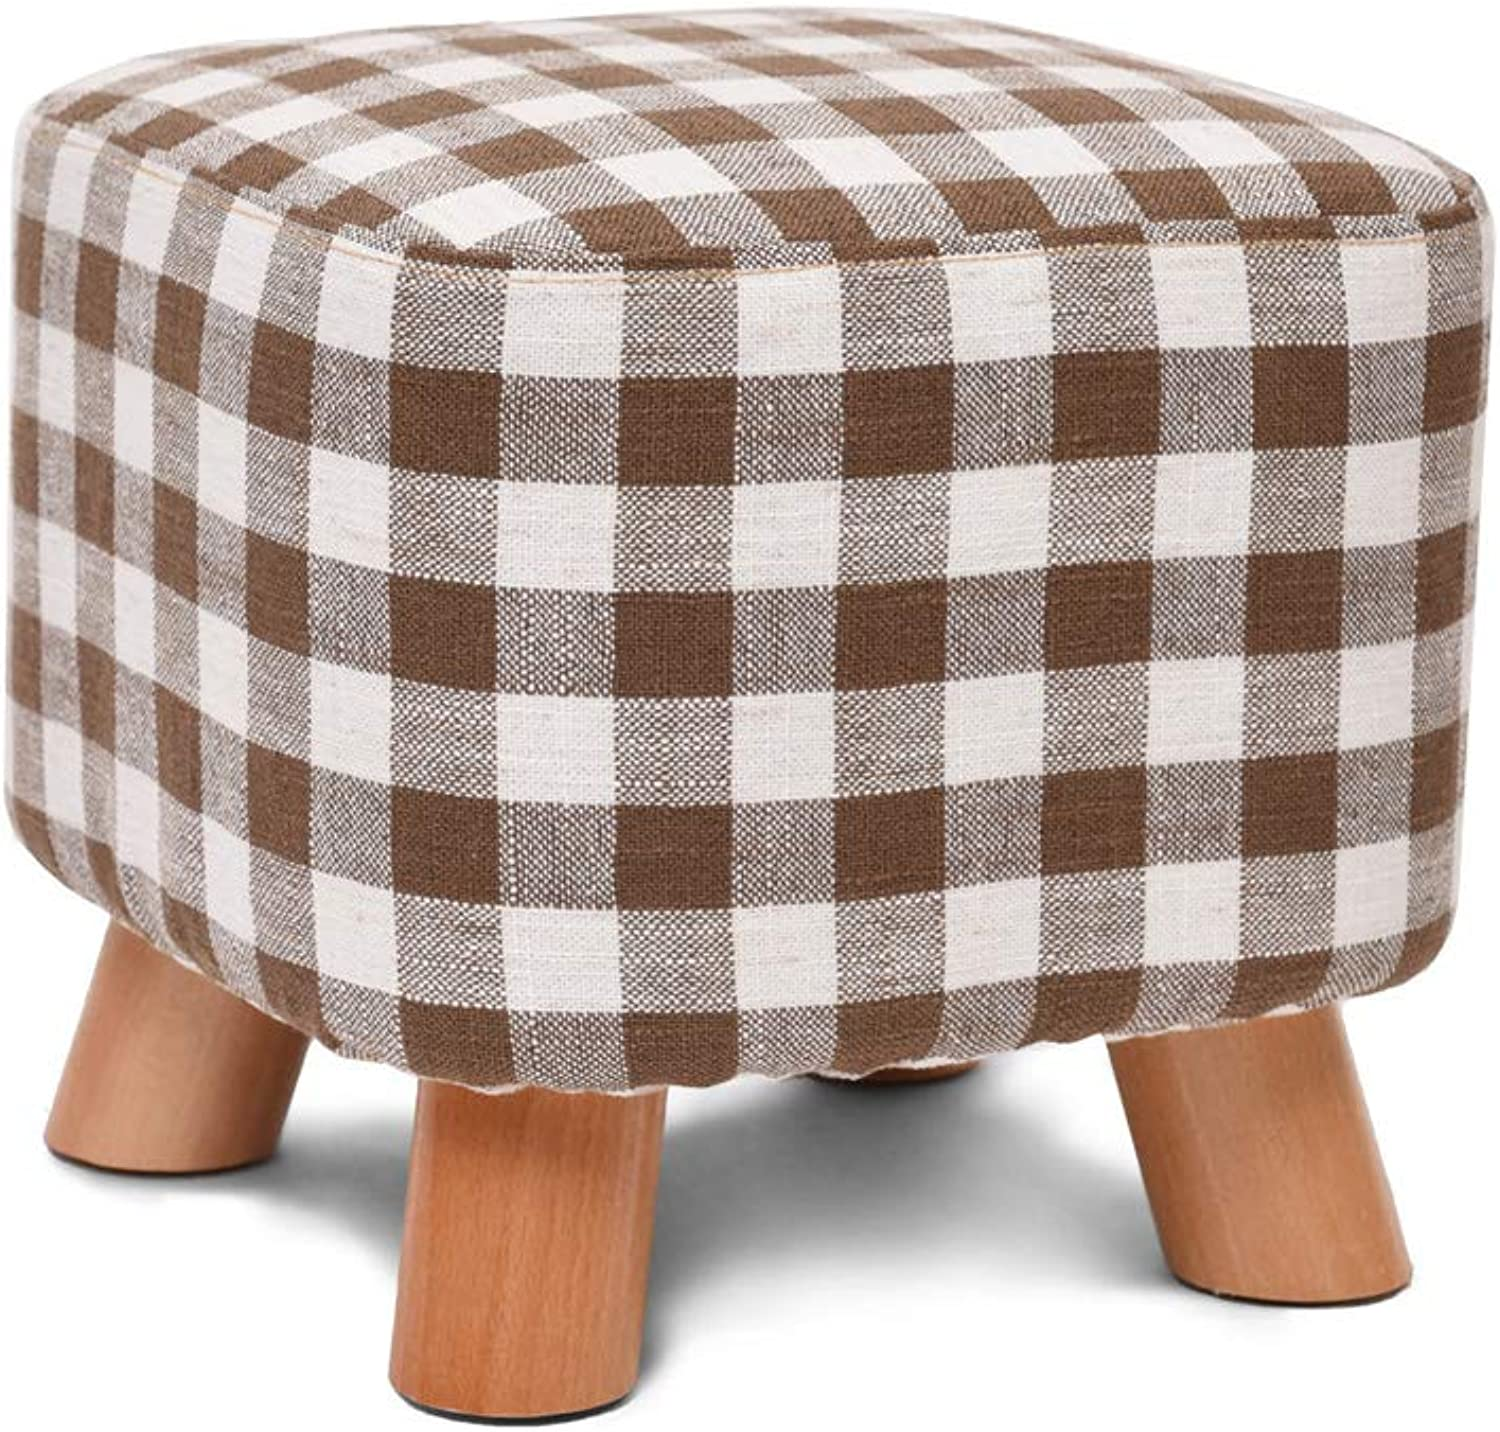 CQ Solid Wood shoes Bench Fashion shoes Stool Creative Square Stool Fabric Stool Stool Sofa Stool Coffee Table Bench Home Stool